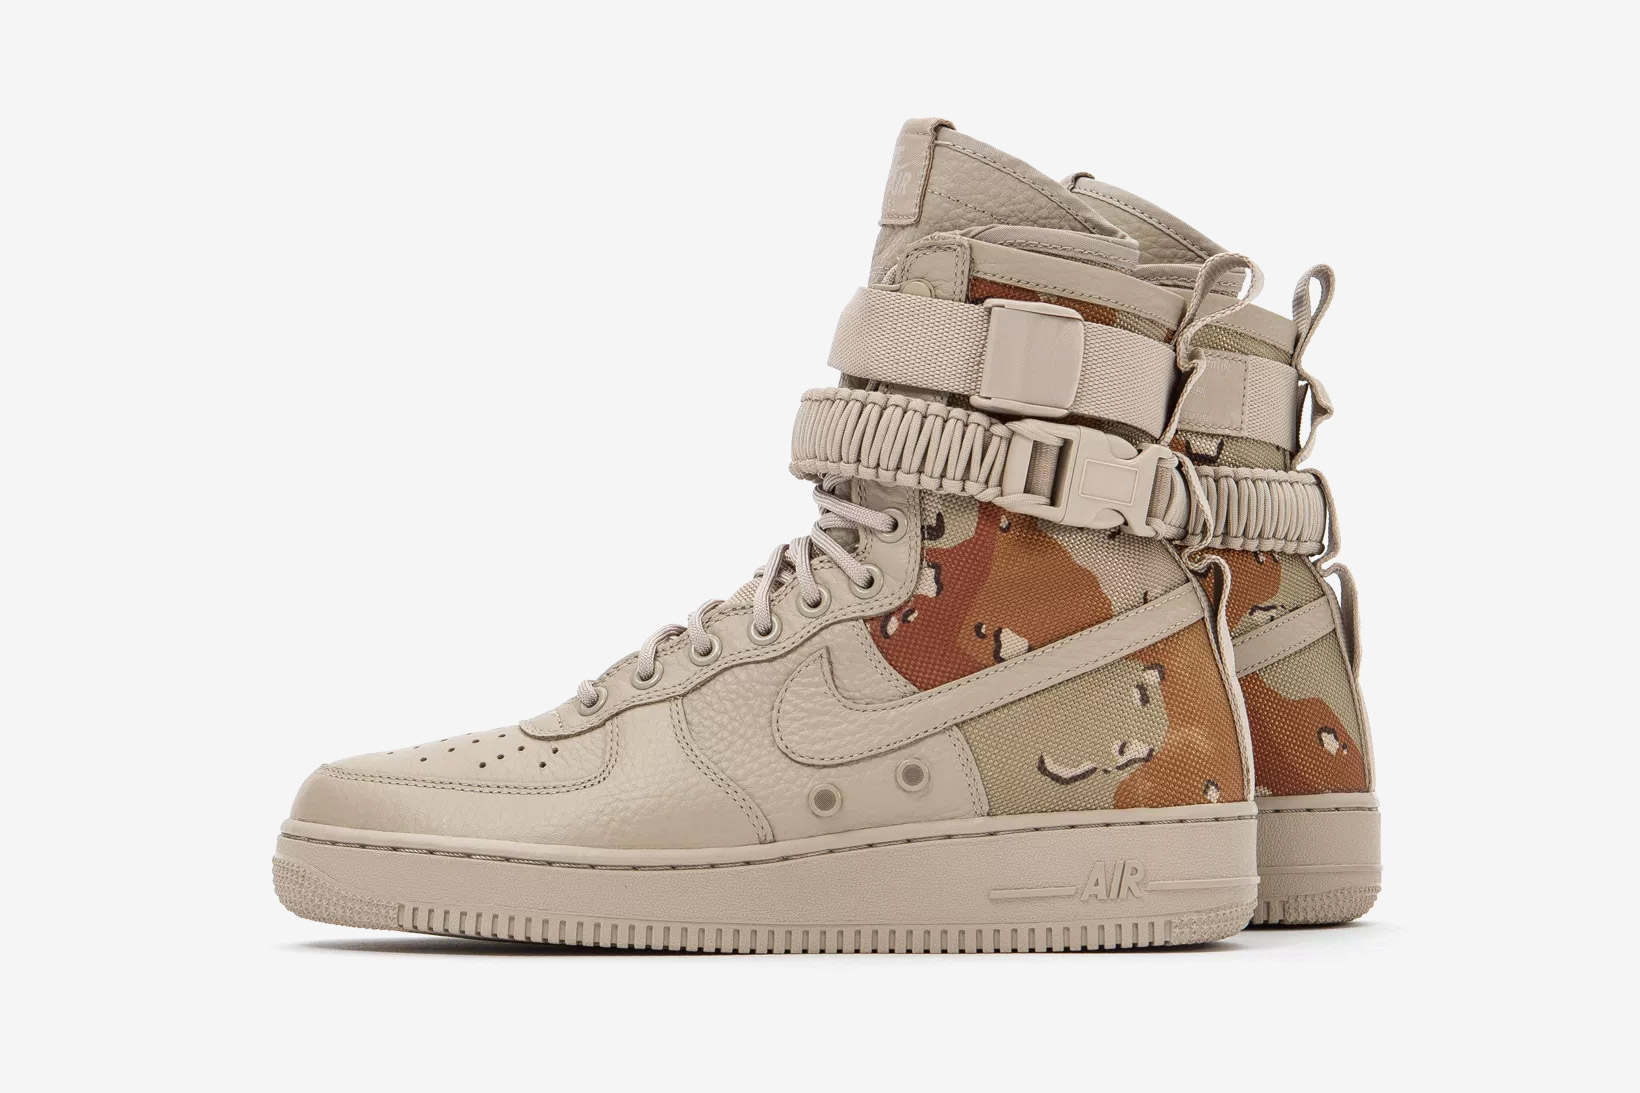 Nike SF Air Force Desert Camo 4